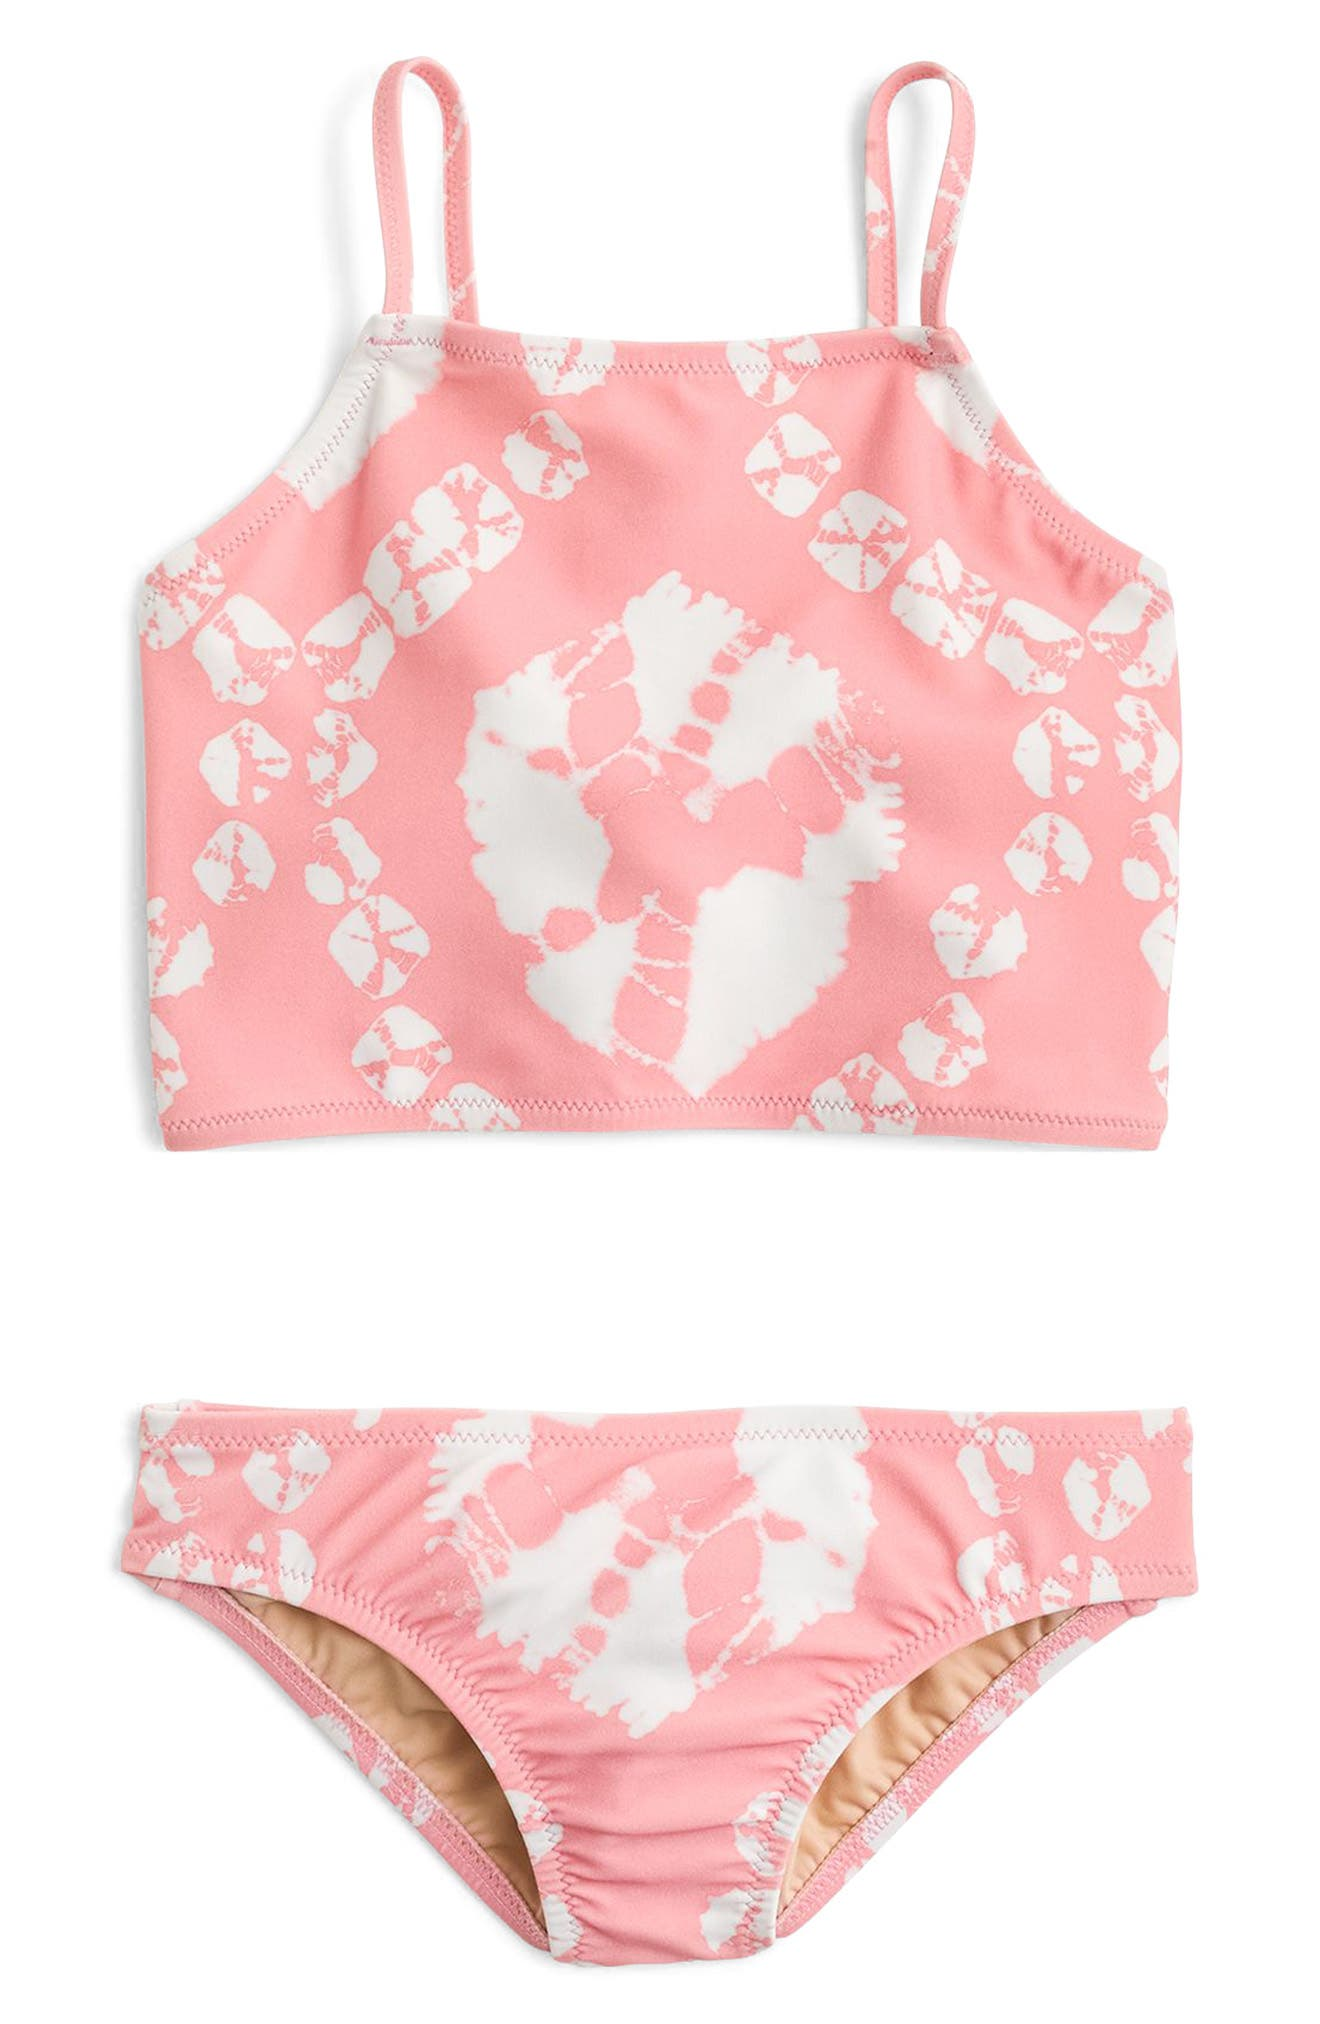 Tie Dye Two-Piece Swimsuit,                         Main,                         color, Pink Orange Multi